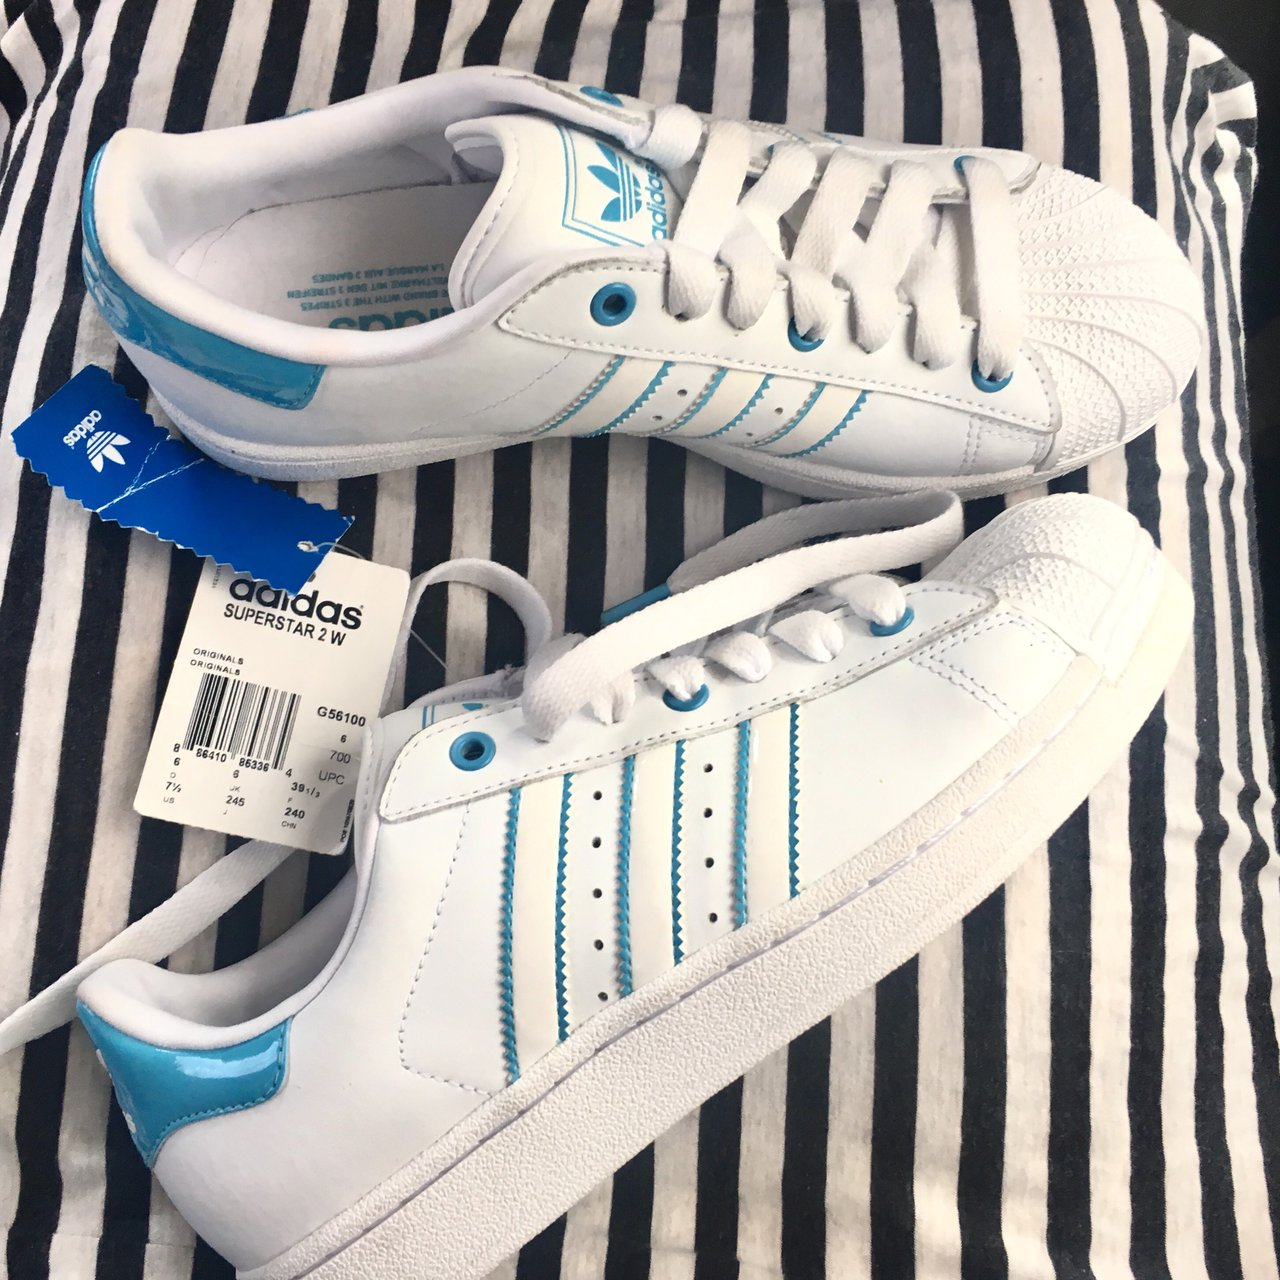 59c861241dba NWT Perfect Condition Rare Baby Blue Adidas Superstars Stan - Depop